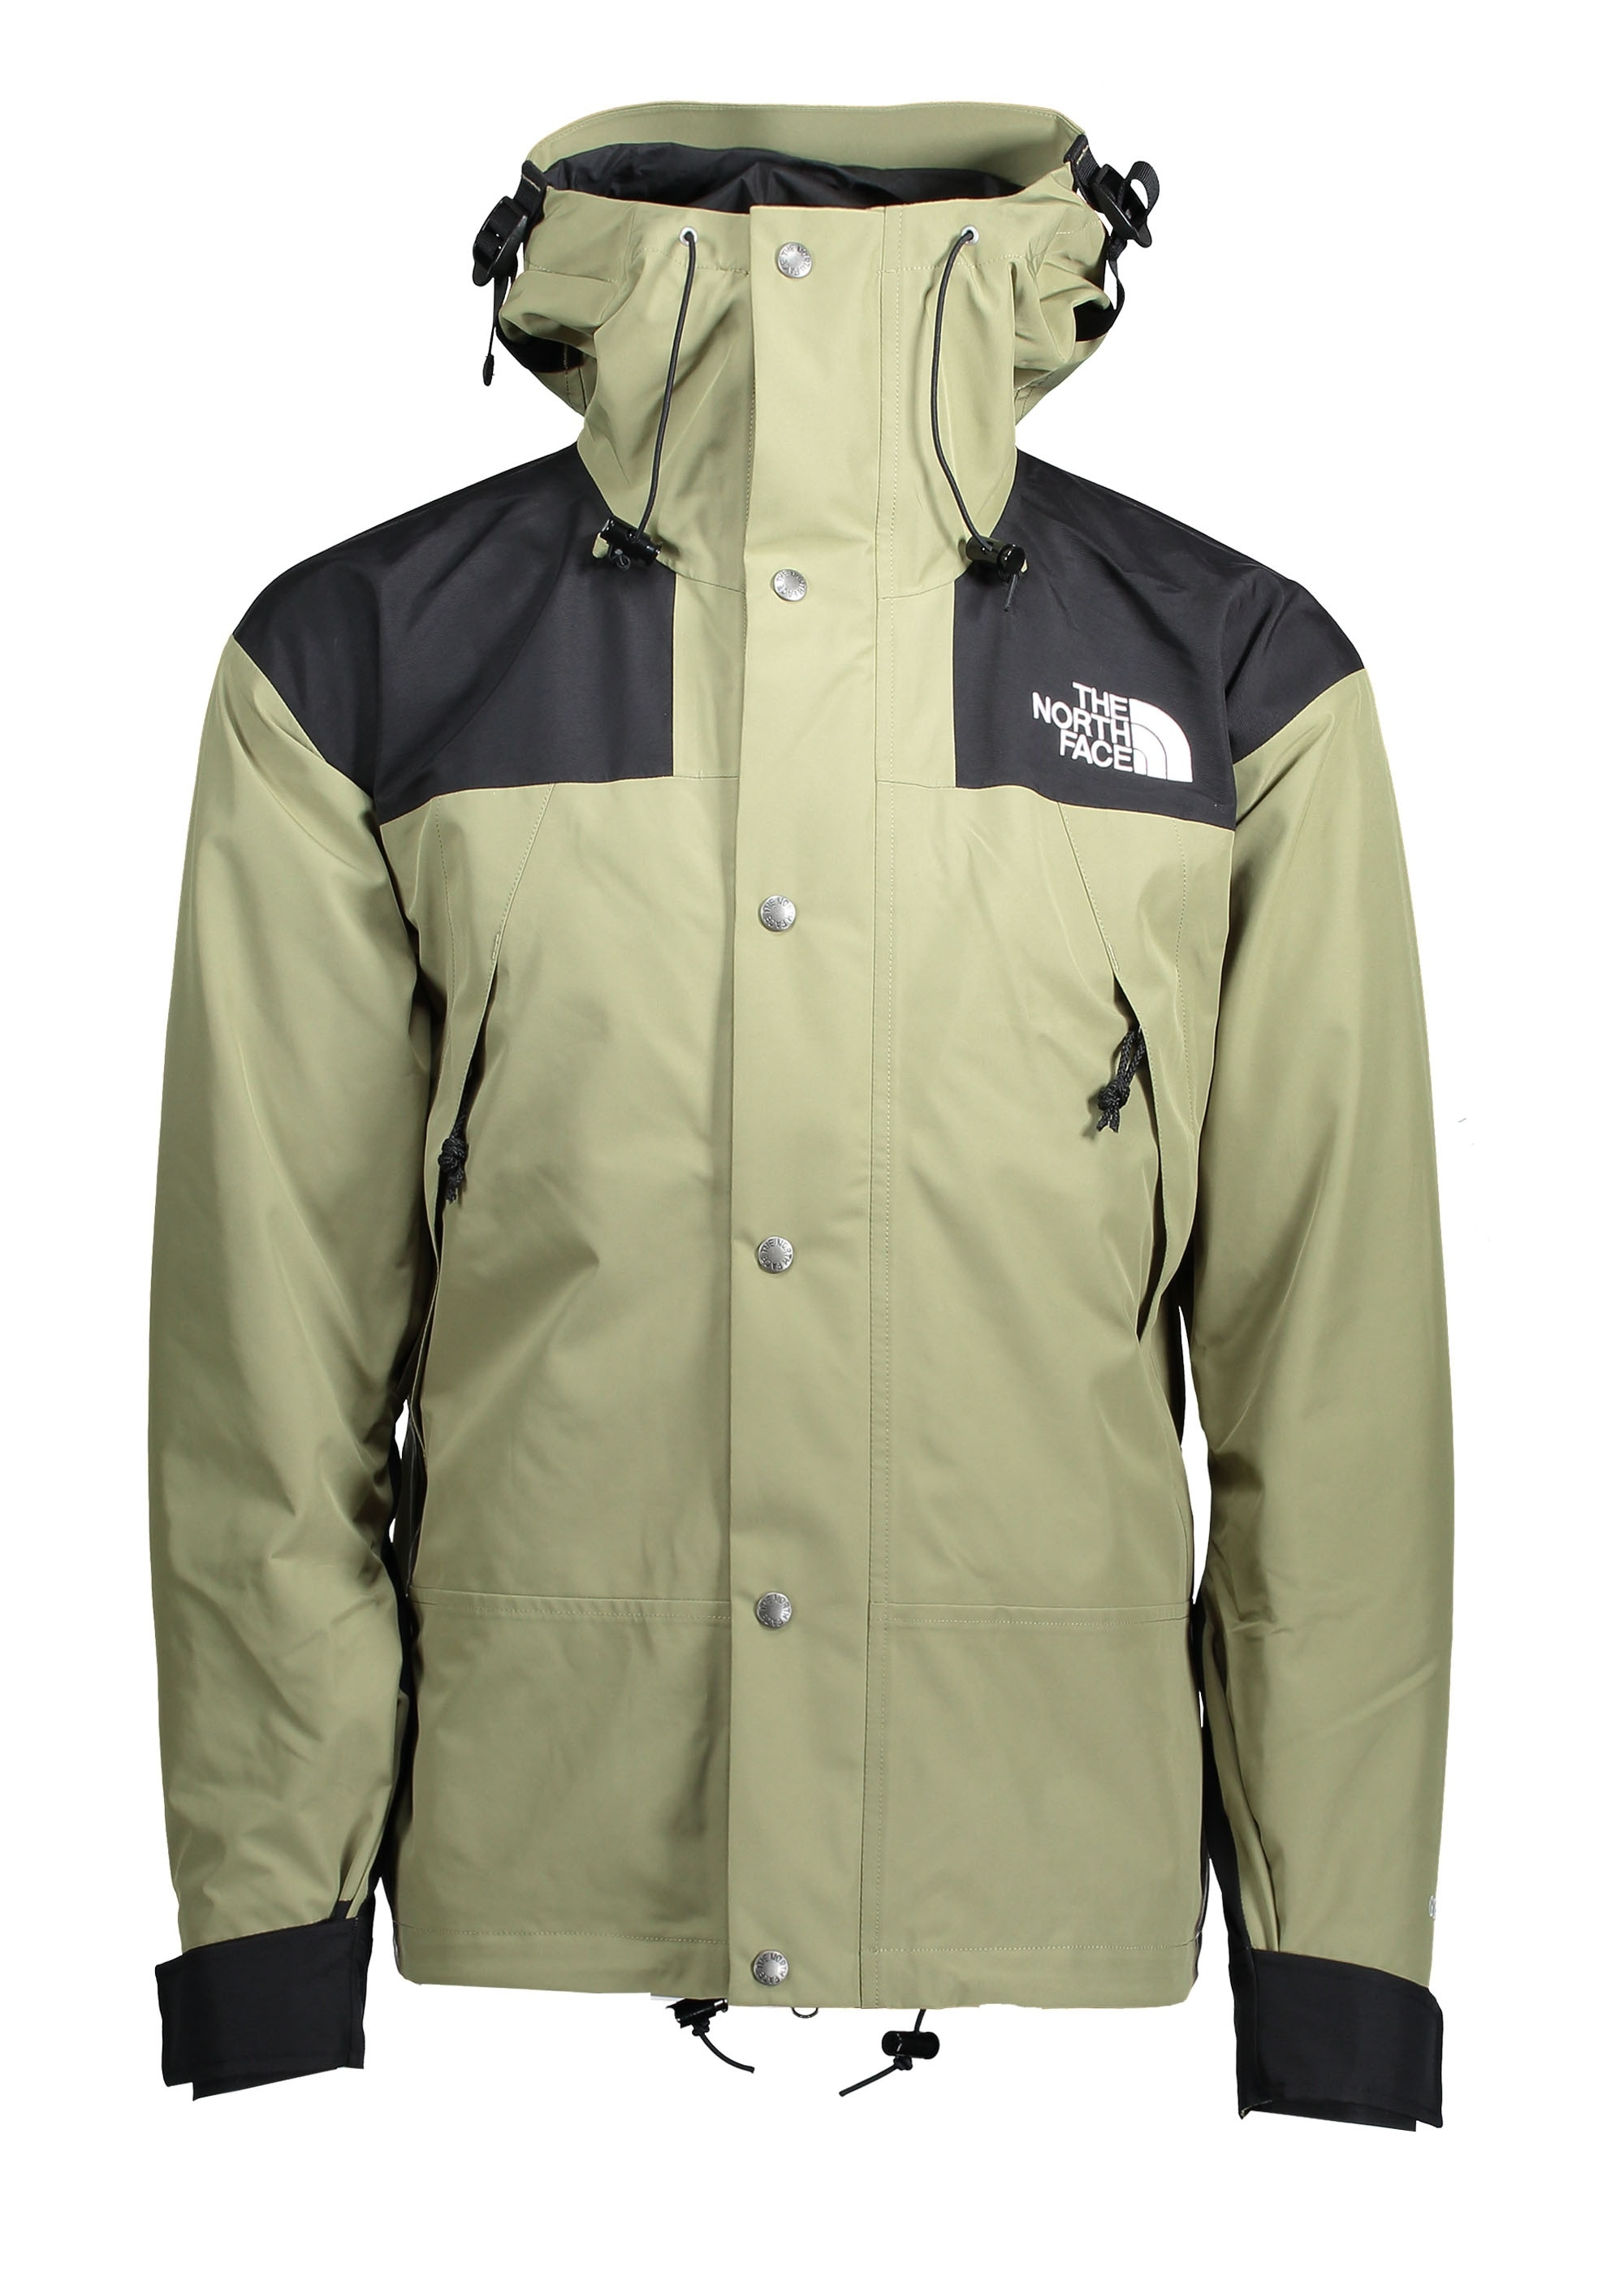 826e8976e The North Face 1990 Mountain Jacket GTX - Tumbled Green